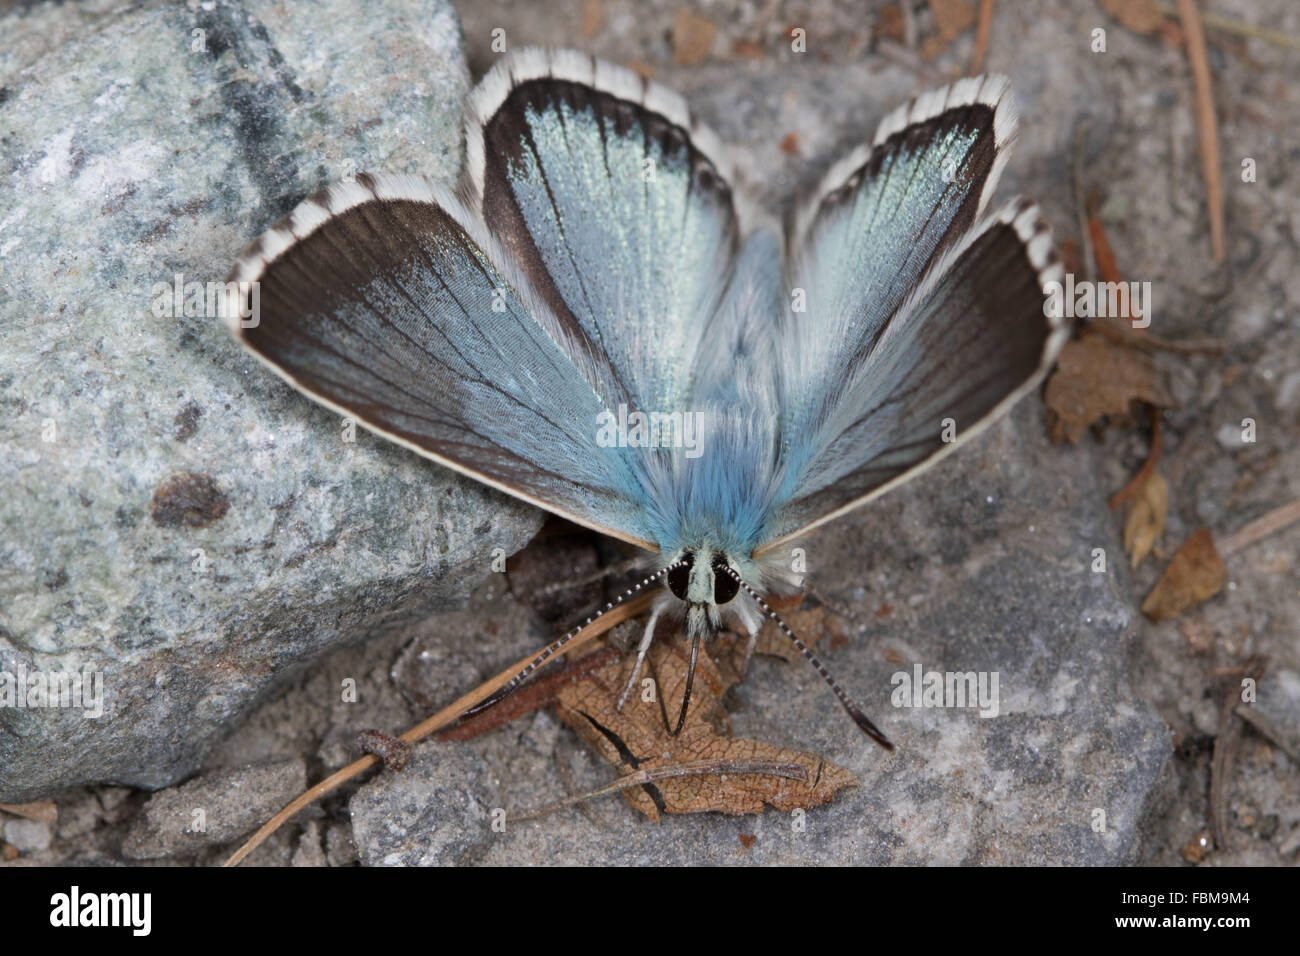 Chalkhill Blue (Polyommatus coridon) butterfly sucking up minerals from a muddy track - Stock Image